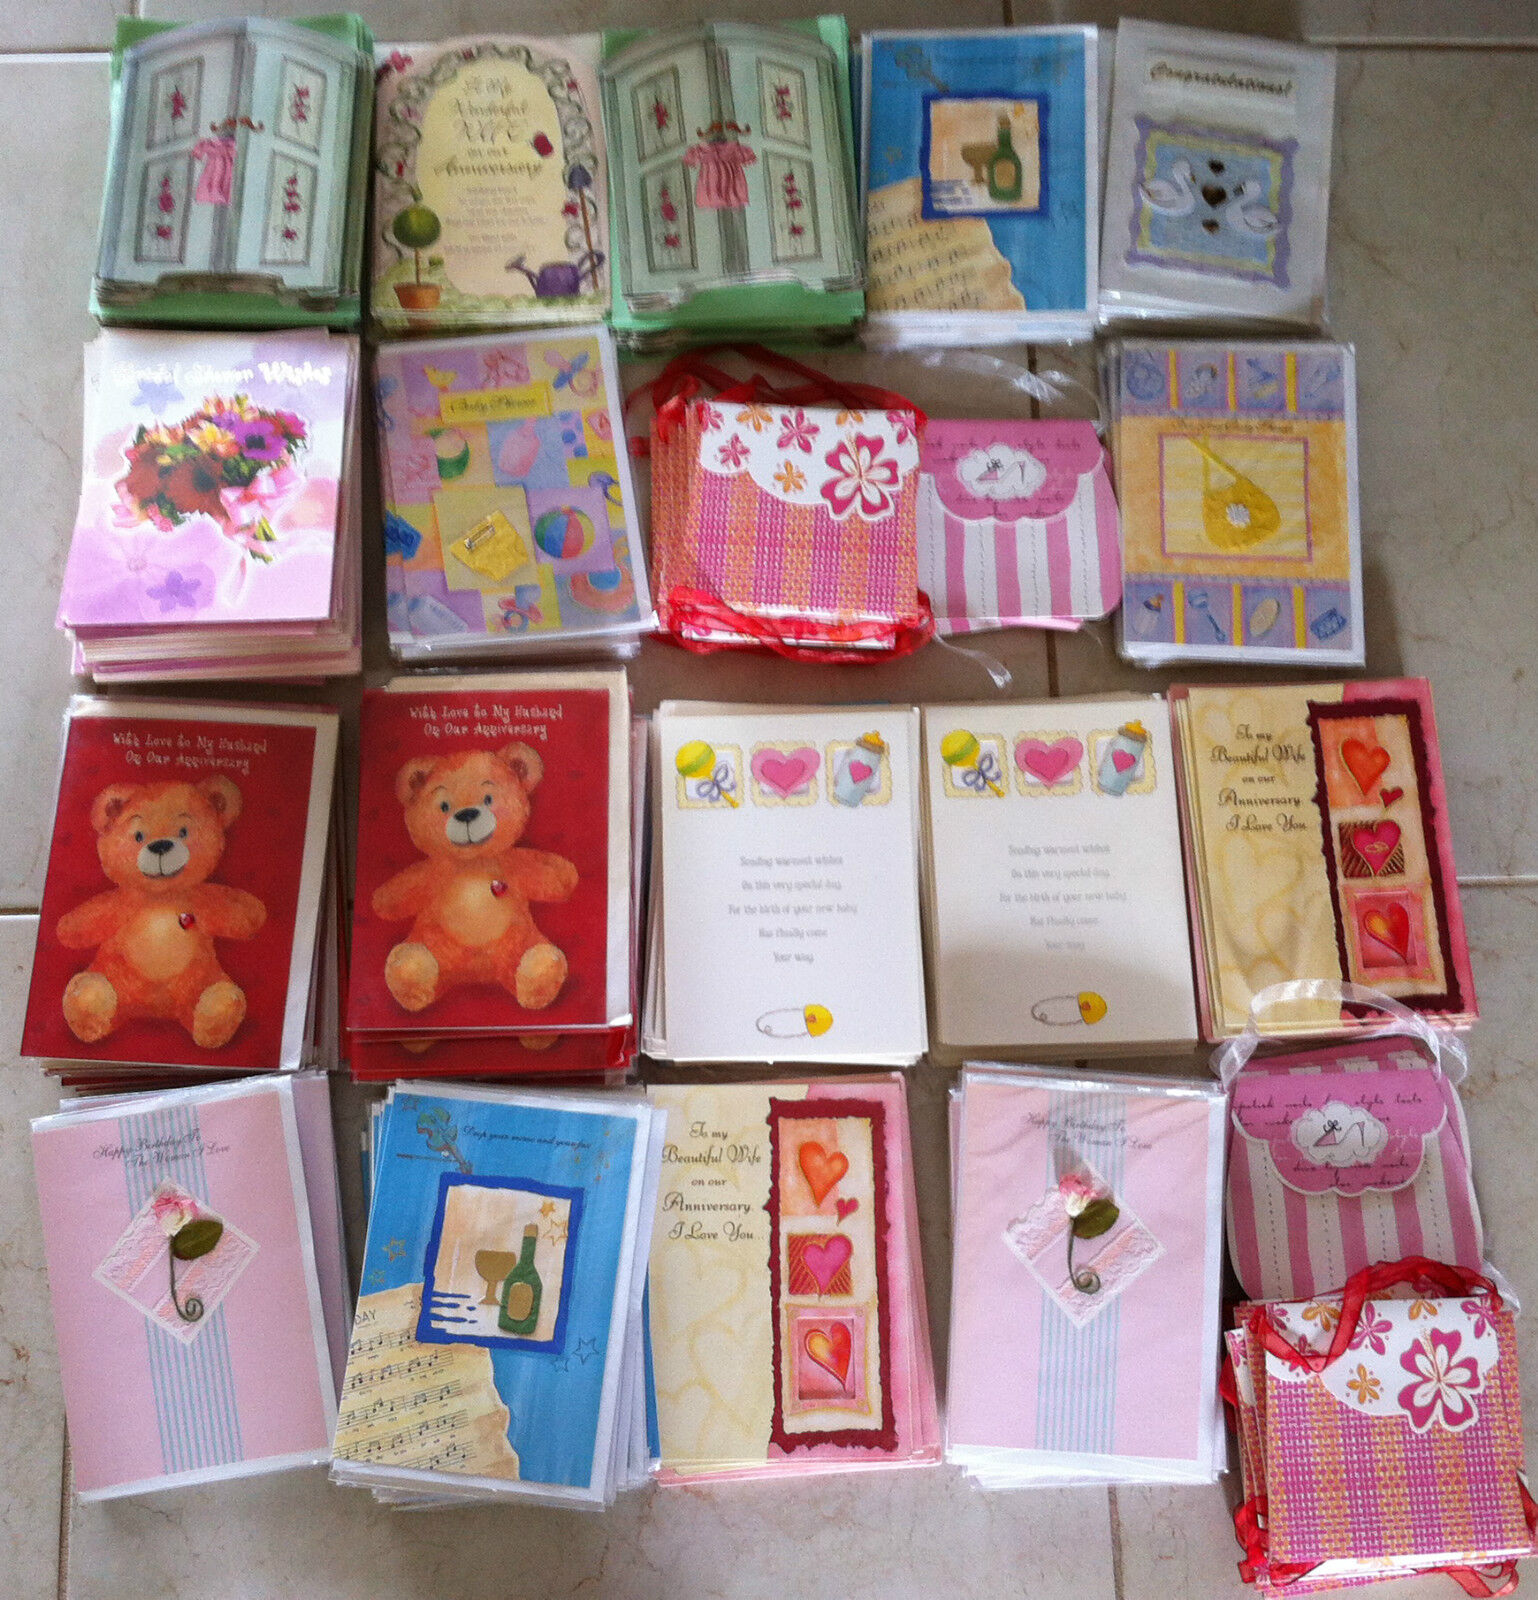 Wholesale Greeting Cards For Resale - Packs Of 12 Cards - Assorted Occasions